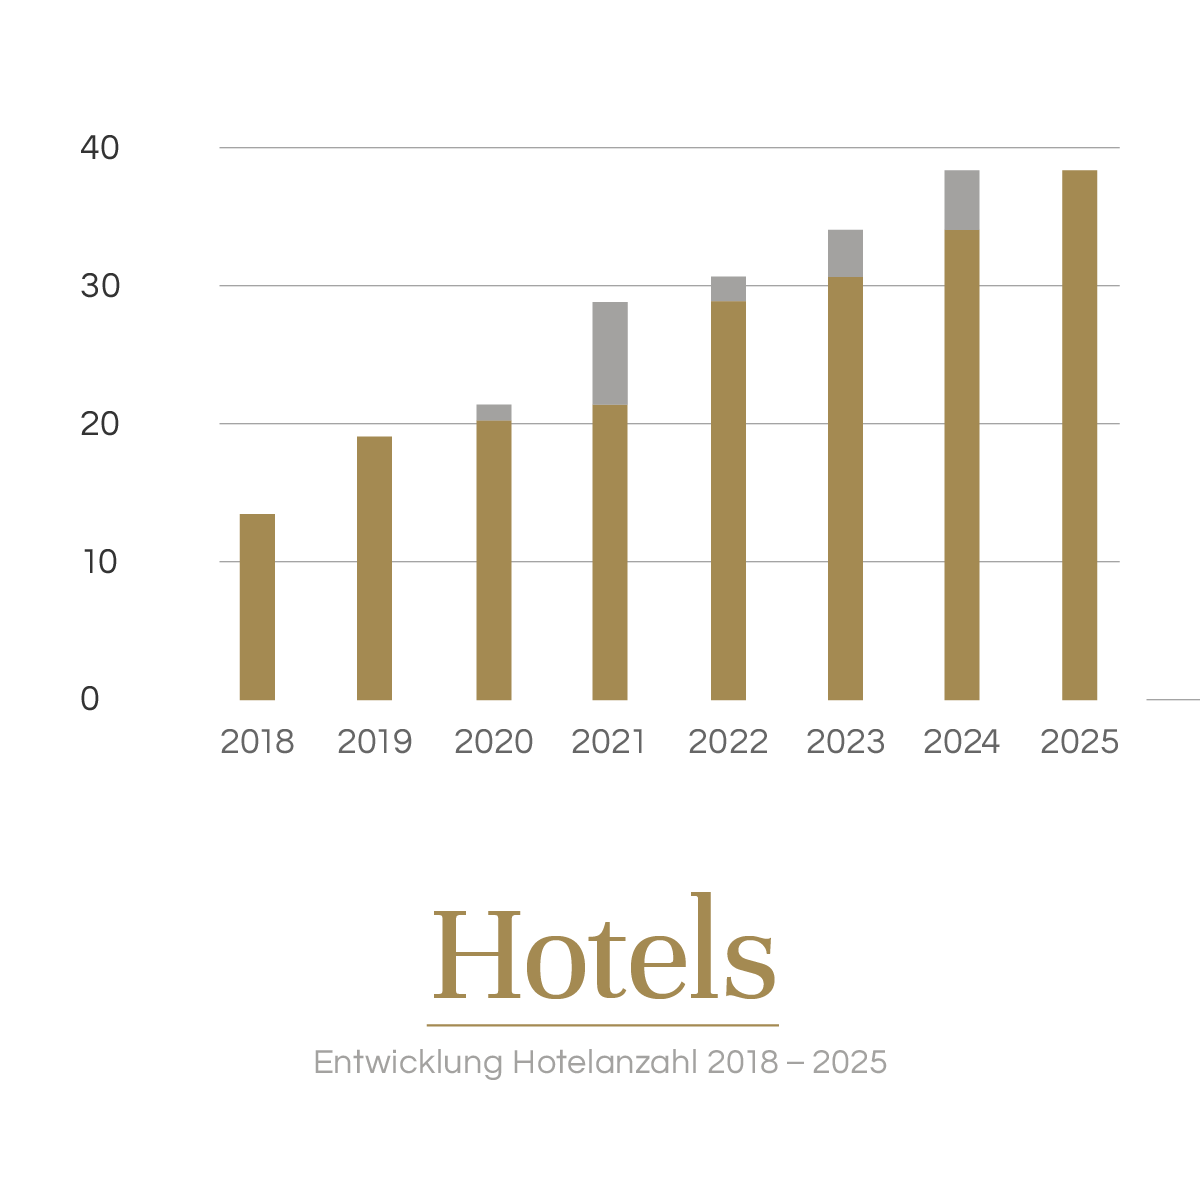 Development number of hotels 2018 - 2025